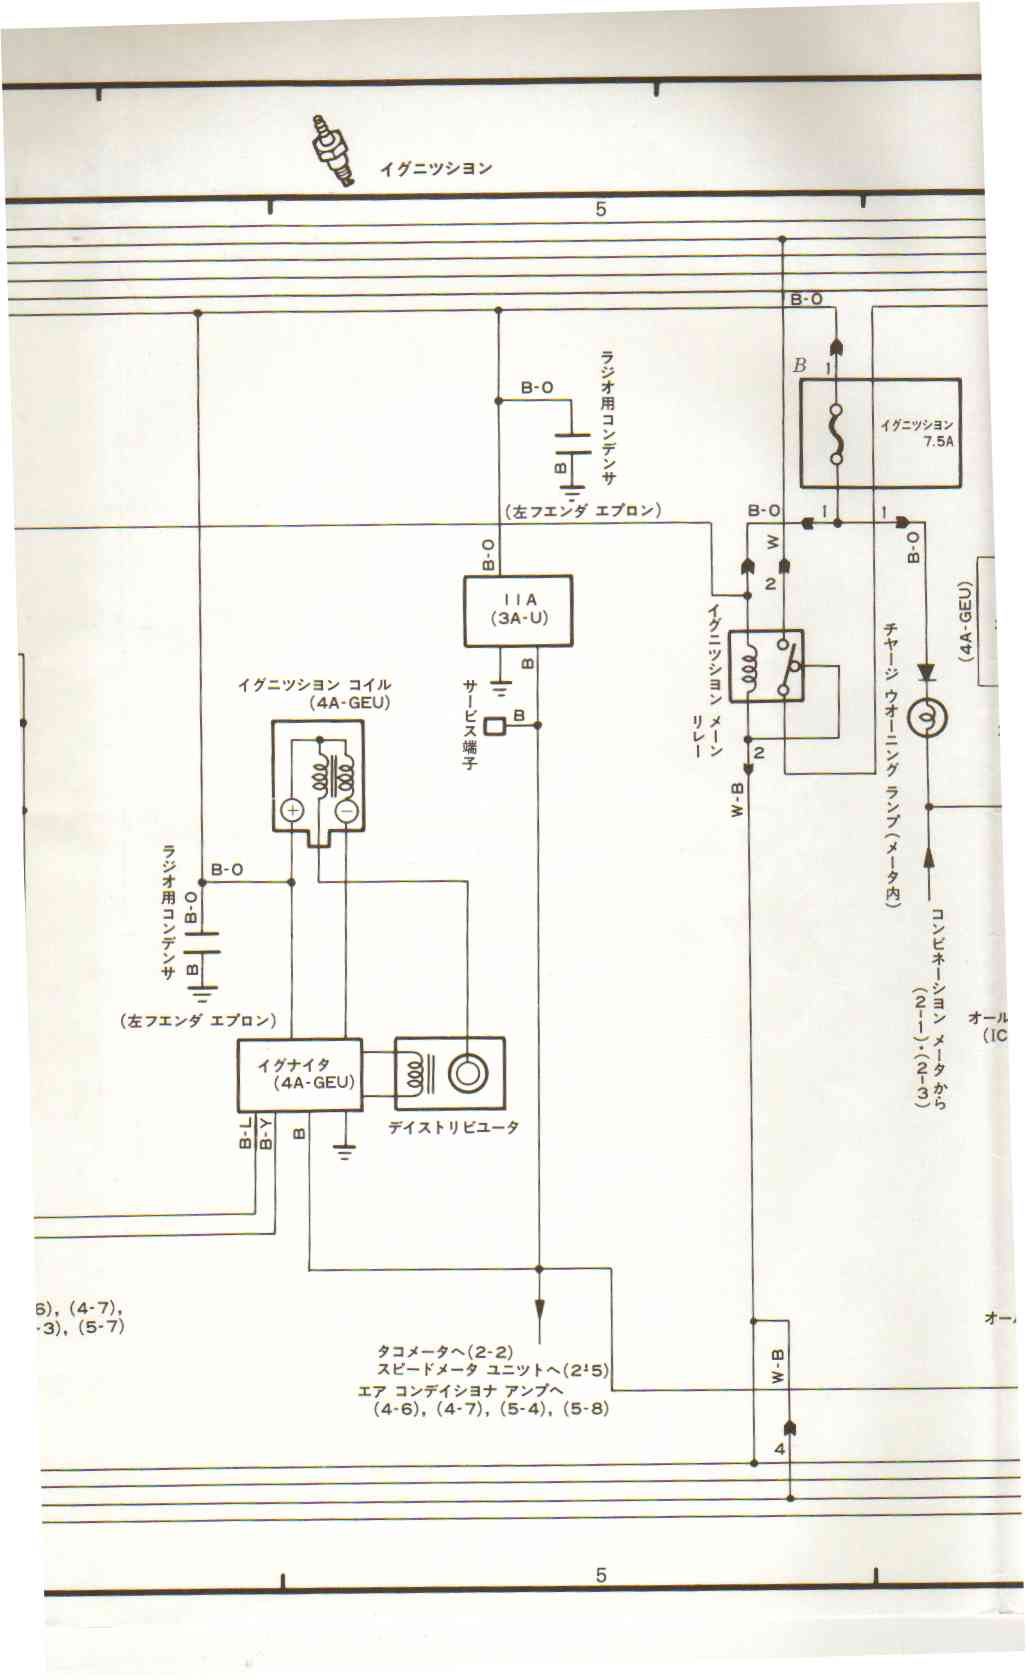 Ae86 Ac Wiring Free Diagram For You Basic Ignition Switch View With Wire Diagrams Rh 40 Jennifer Retzke De 110 Plug